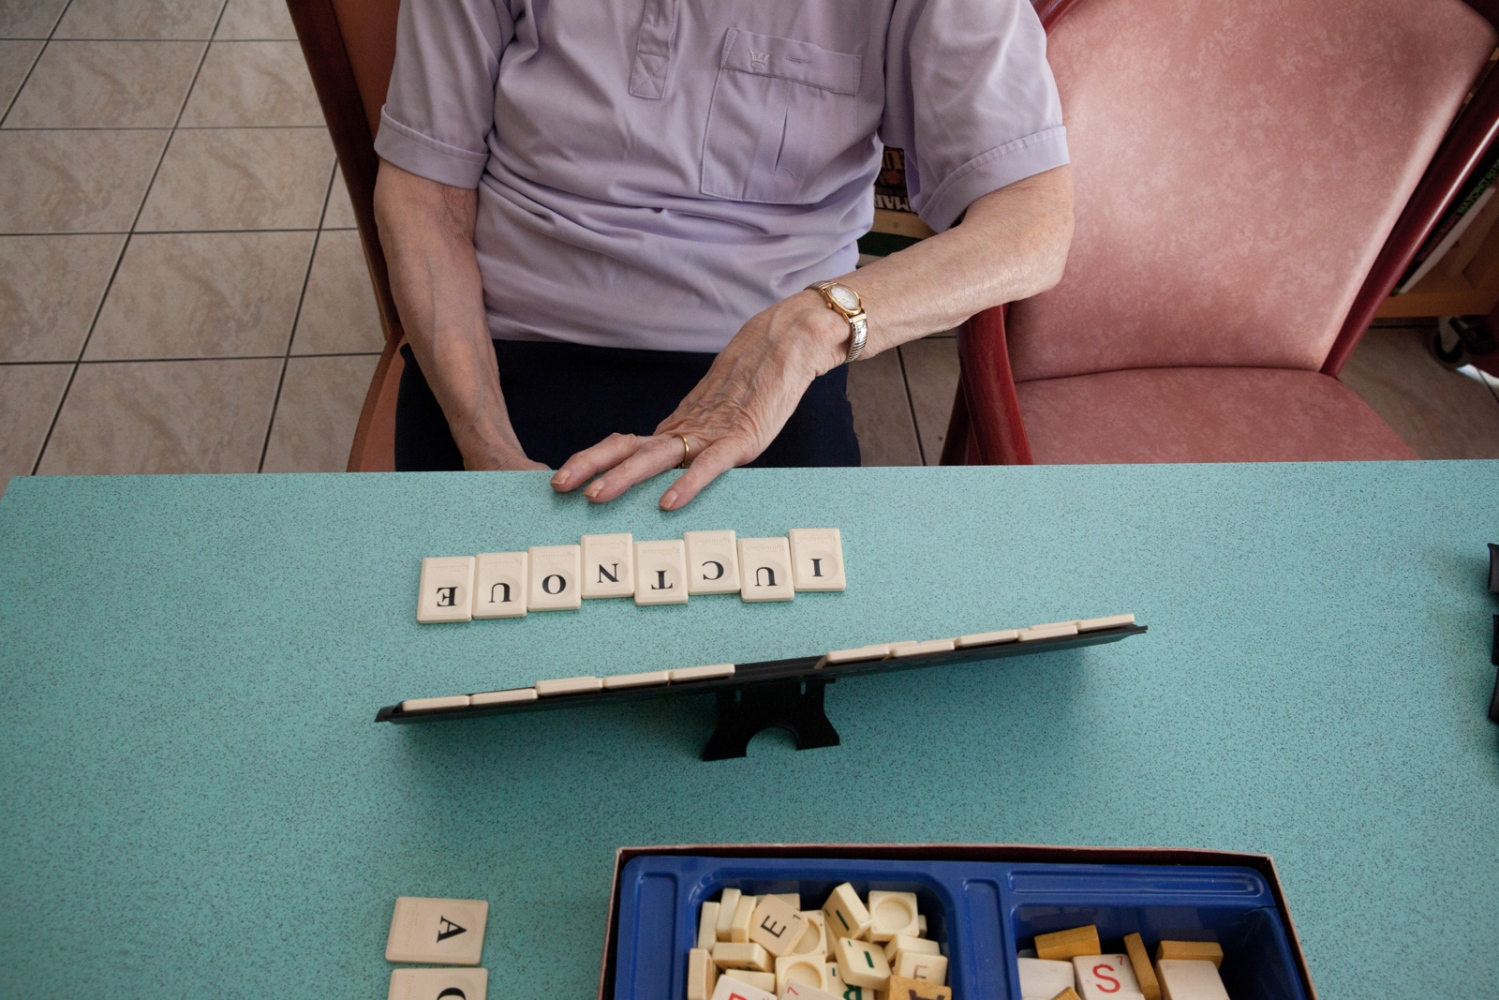 A lady suffering from Alzheimer tries with difficulty to play a Scrabble game. Daily life at Enclos Saint Césaire, Arles, France, 2011